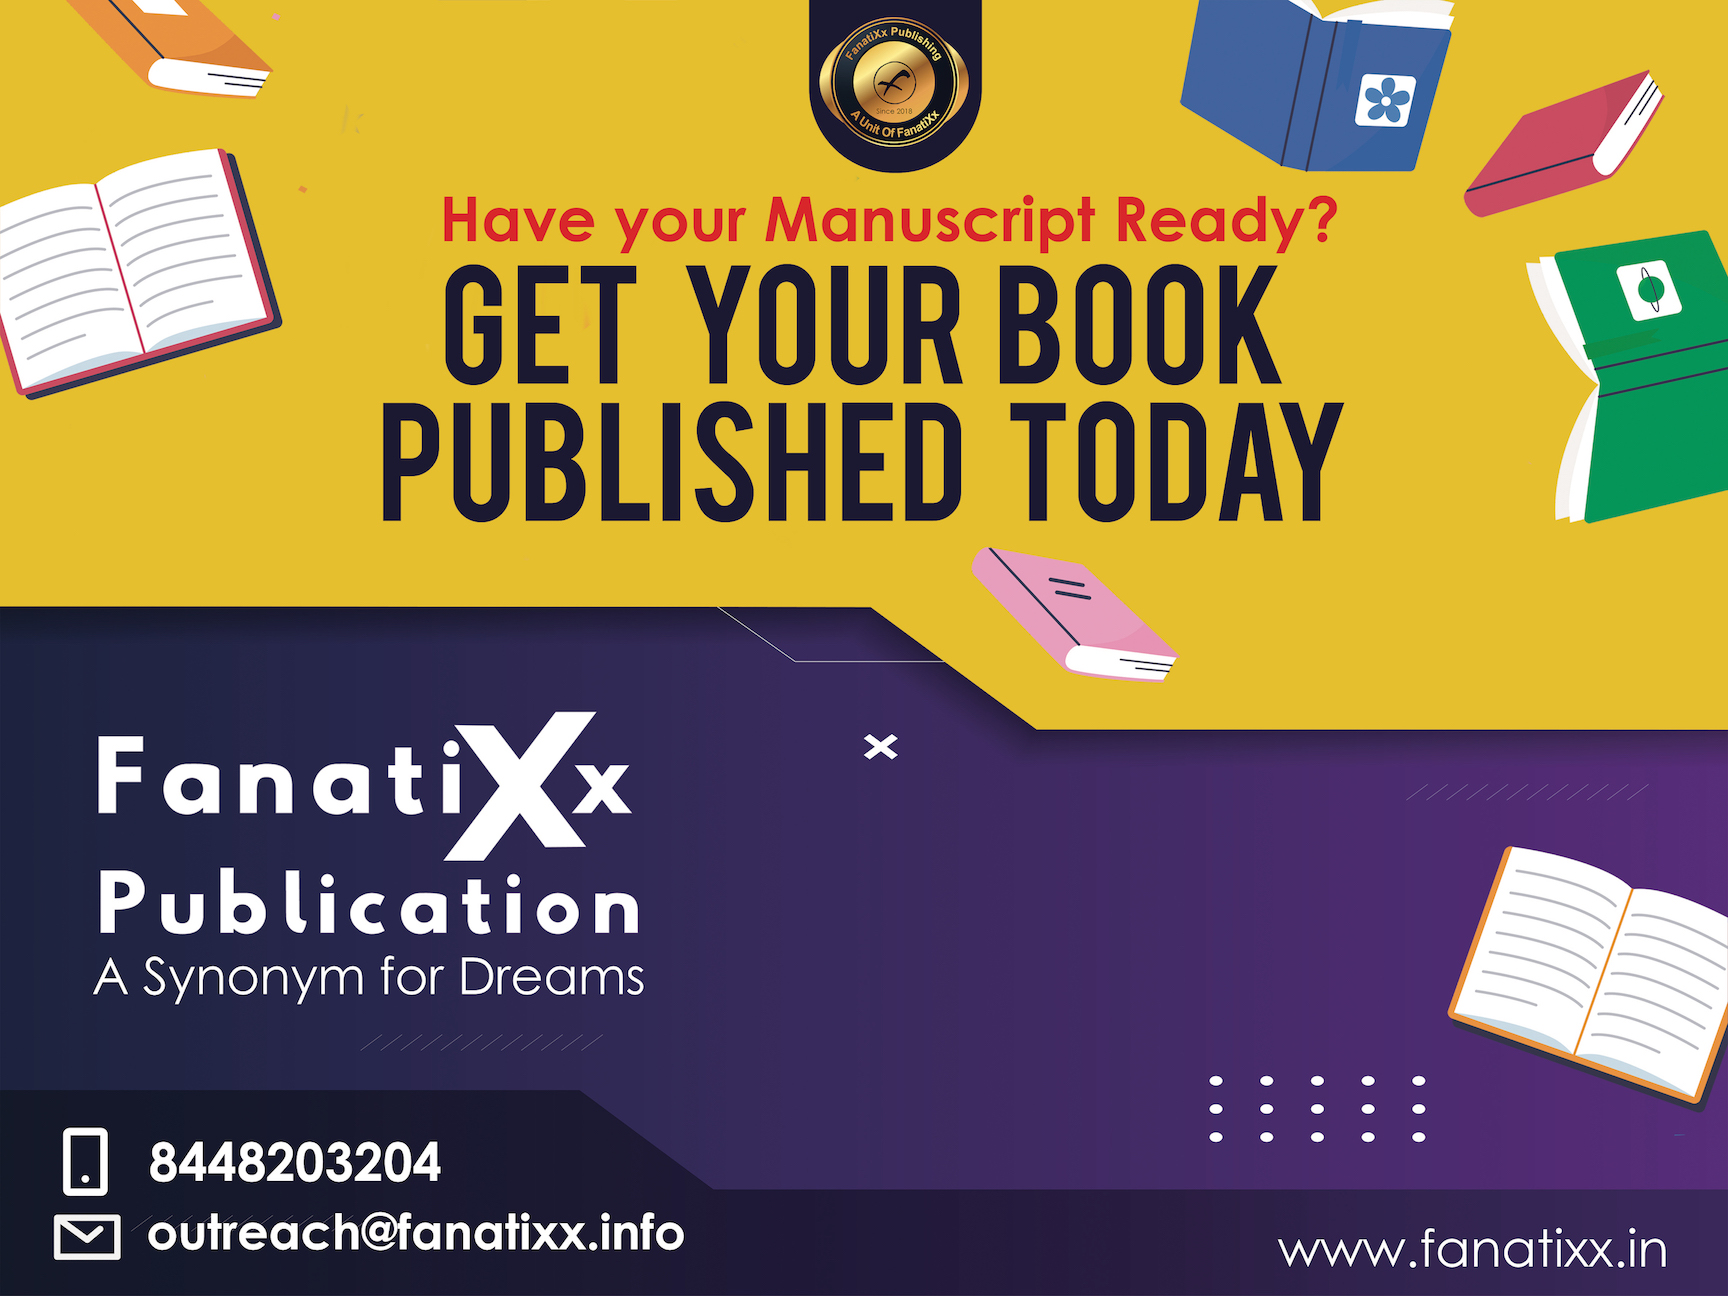 FanatiXx Publication: A synonym to dreams